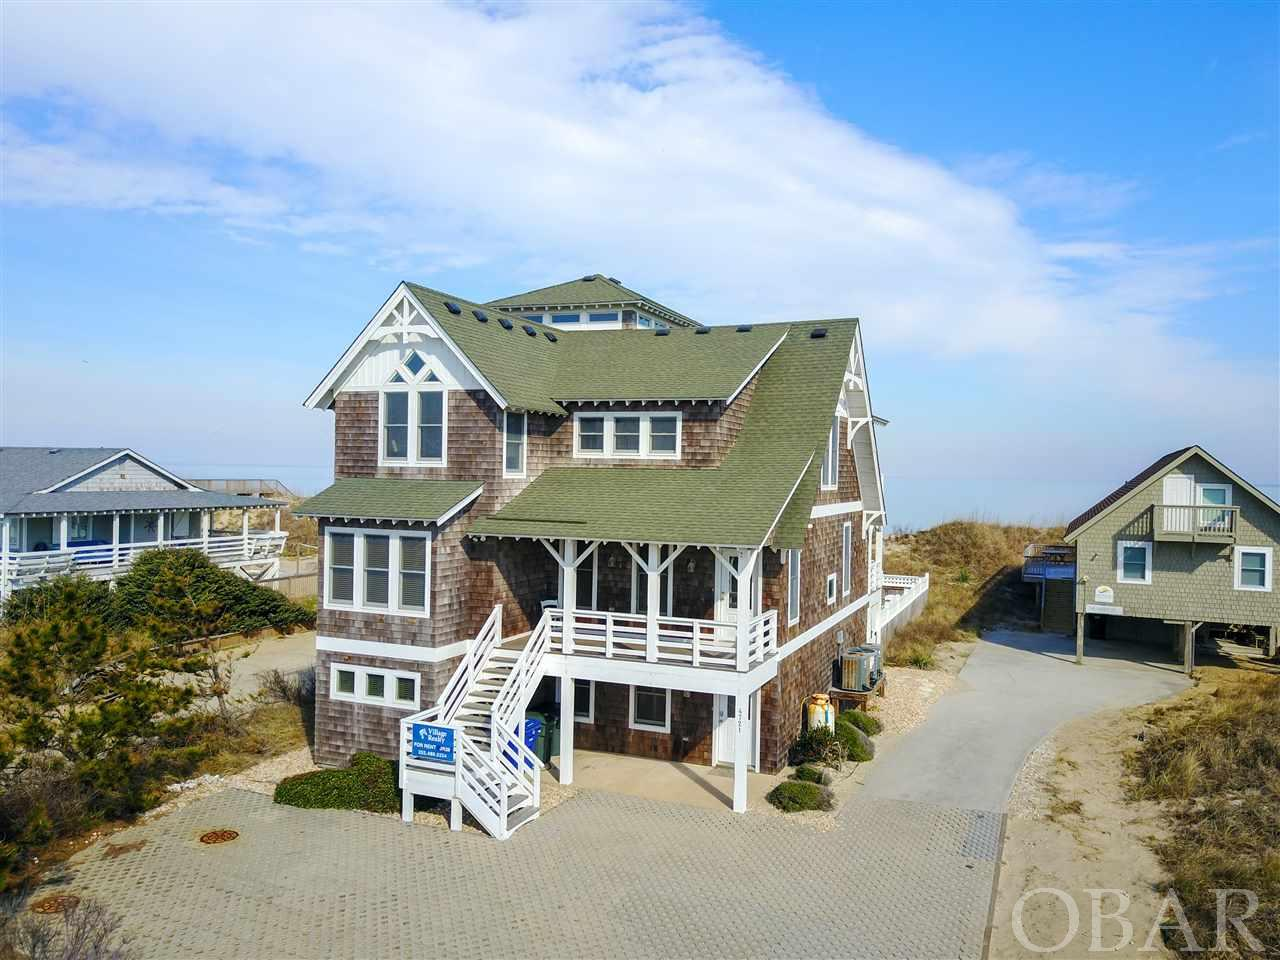 4721 Virginia Dare Trail, Nags Head, NC 27959, 7 Bedrooms Bedrooms, ,5 BathroomsBathrooms,Residential,For sale,Virginia Dare Trail,103439